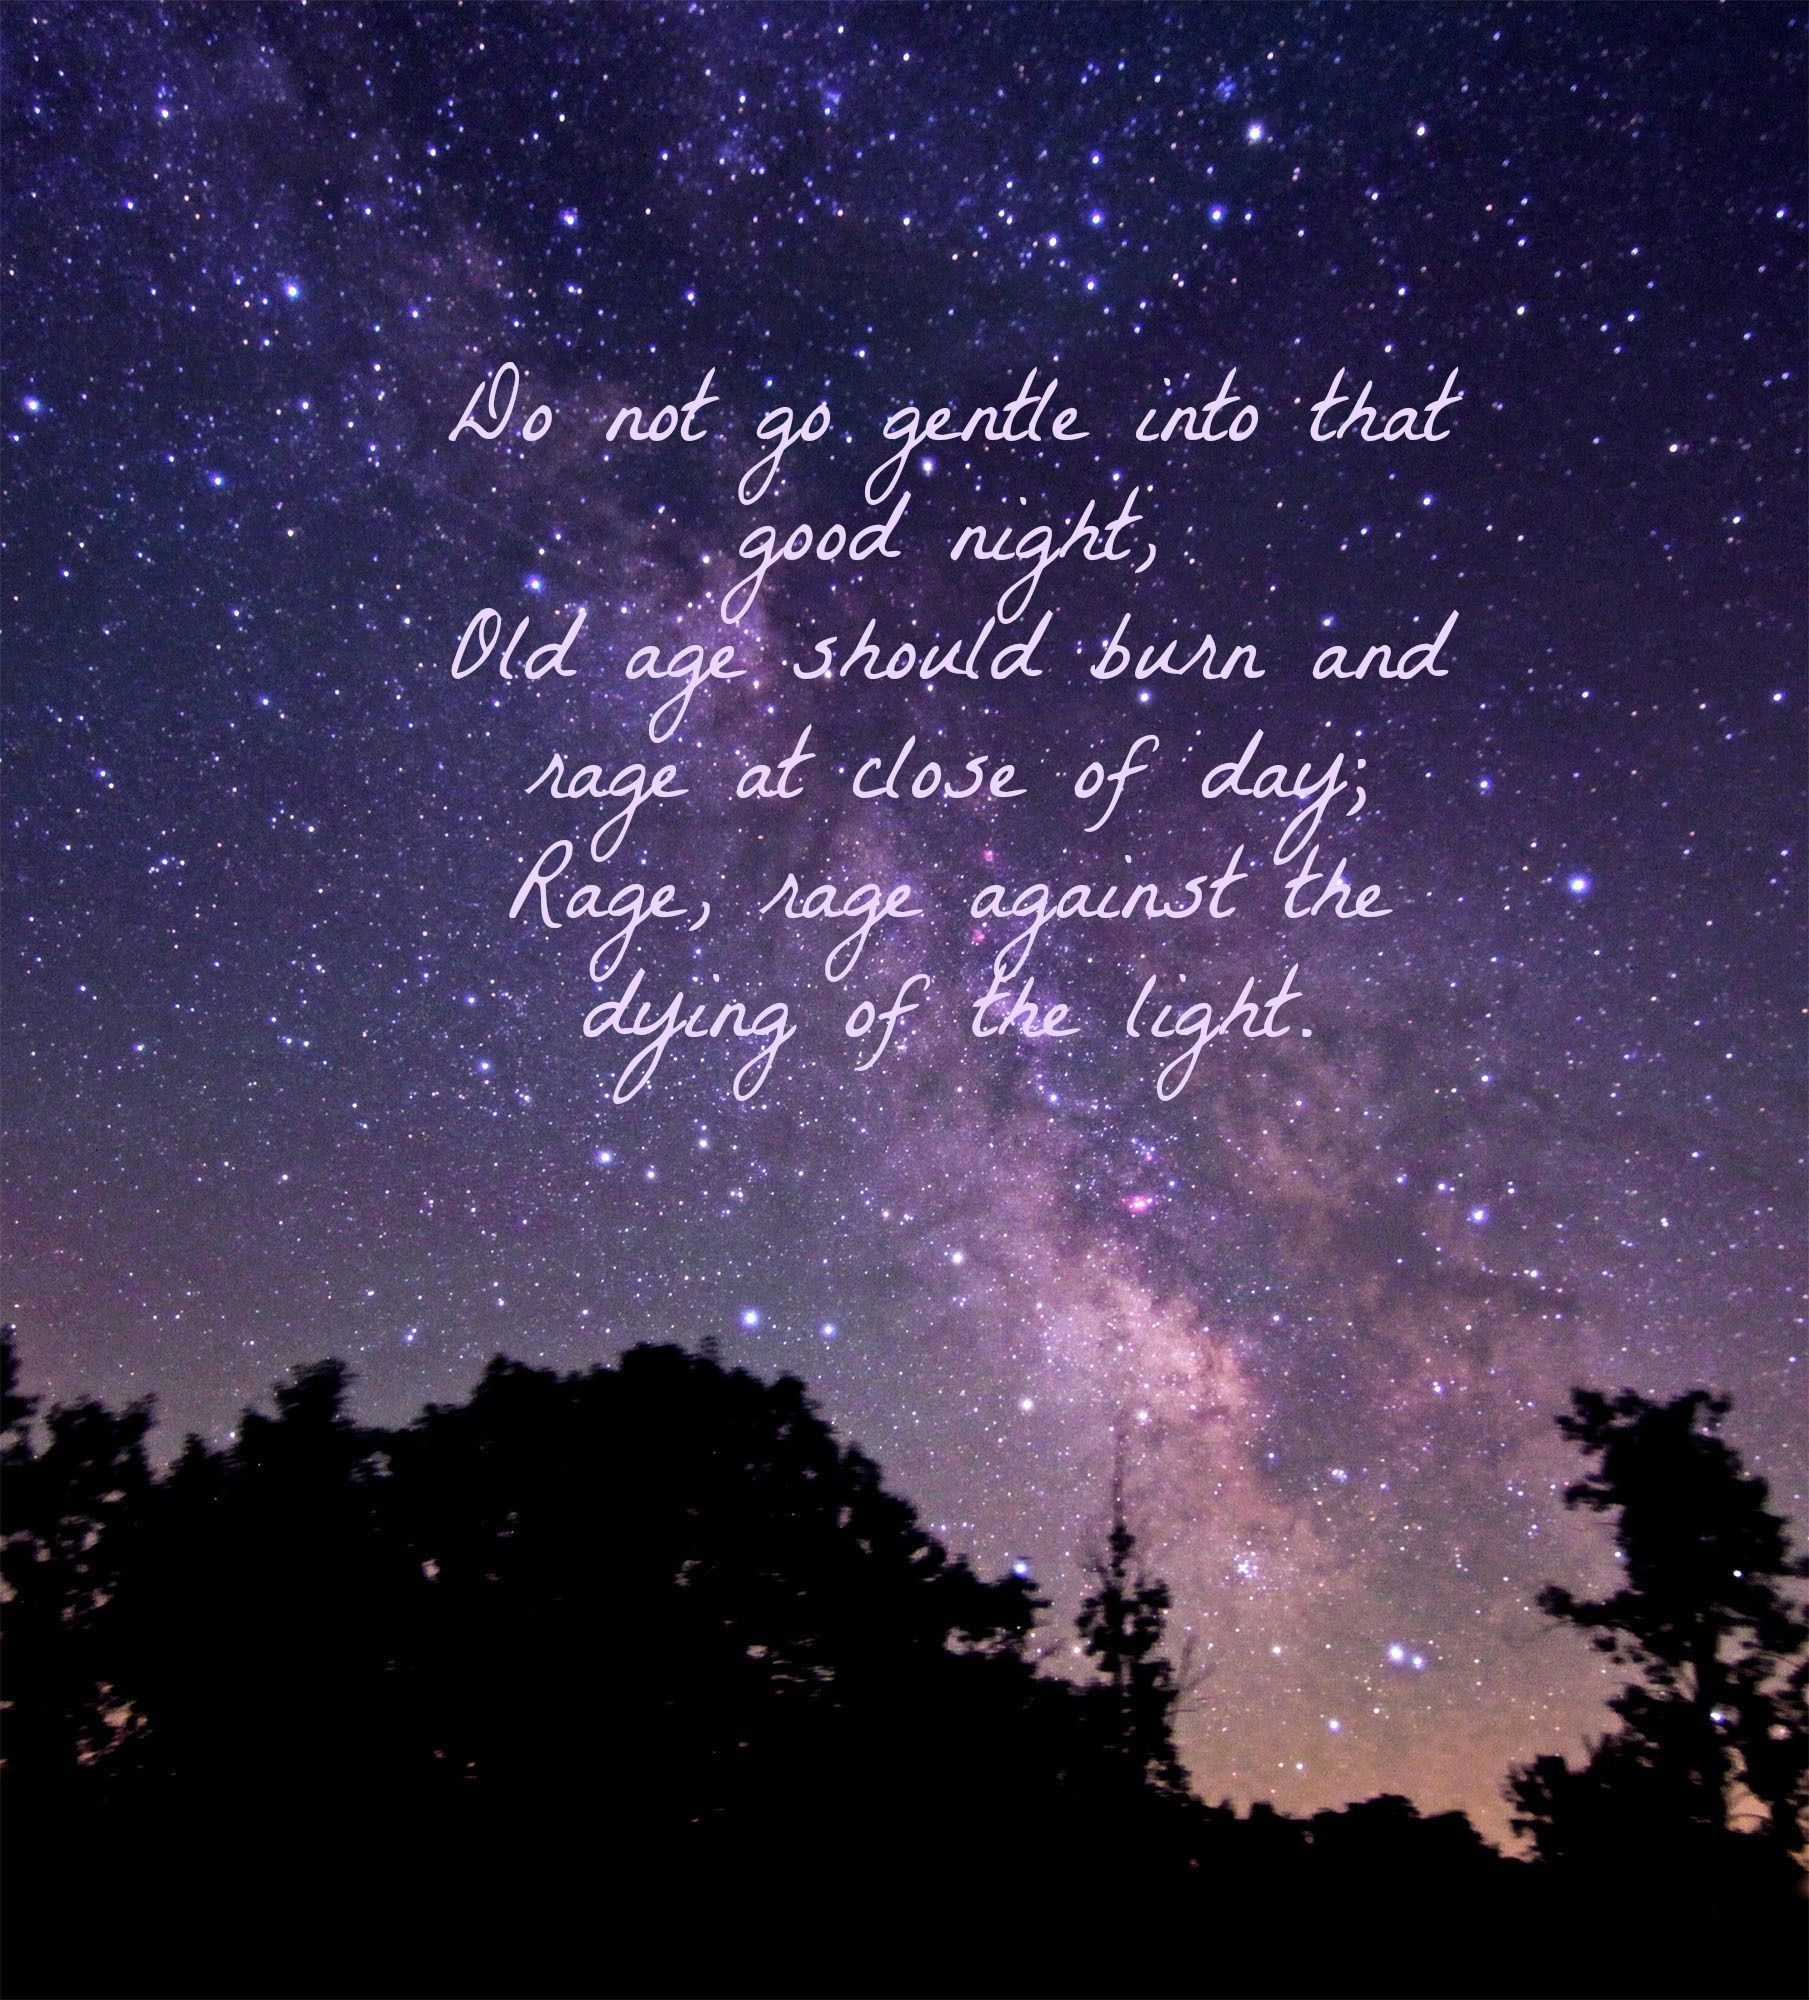 Do Not Go Gentle Into That Good Night Bravery Quotes